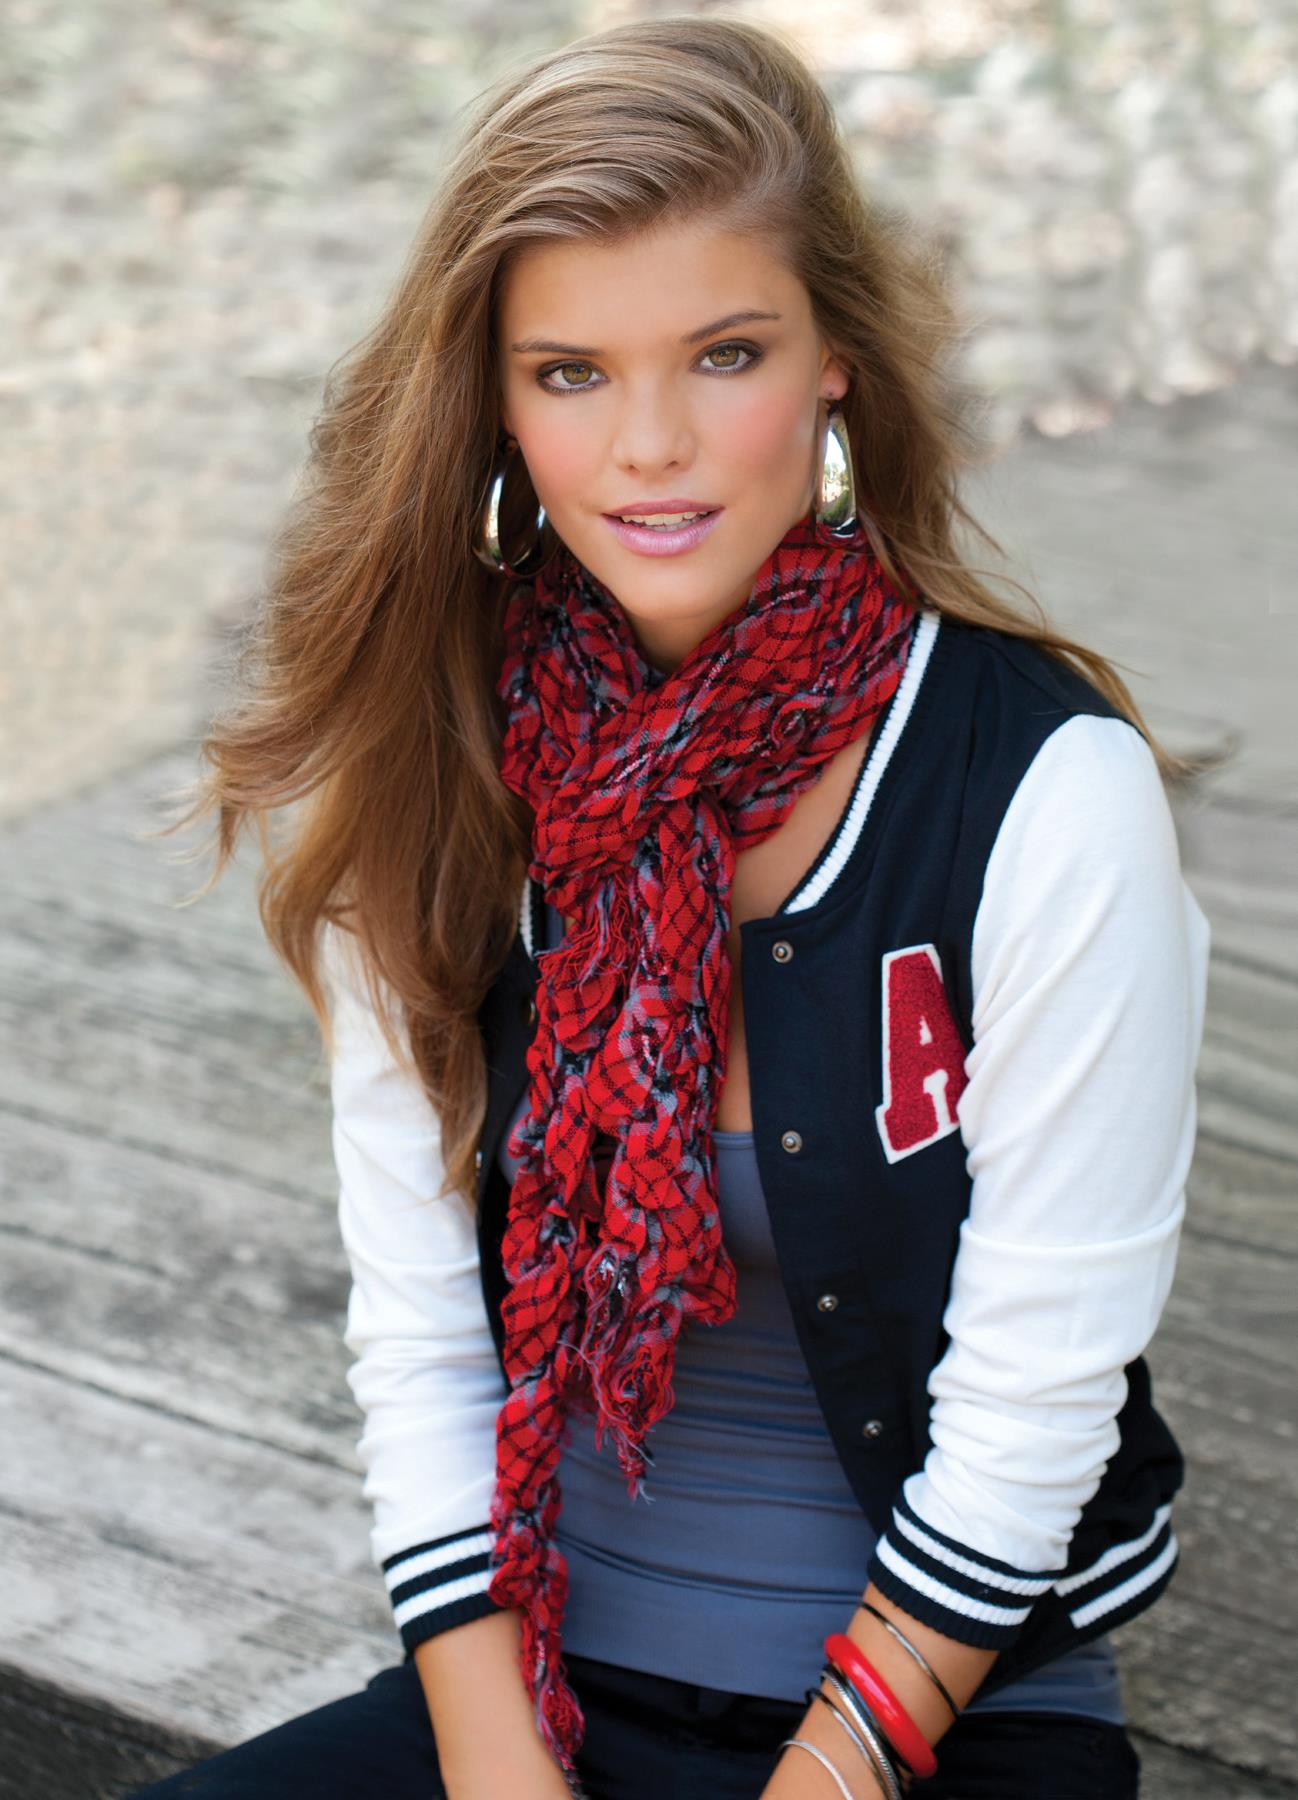 nina-agdal-body-central-fashionwear-2011-set-2-central-holiday-lookbook06